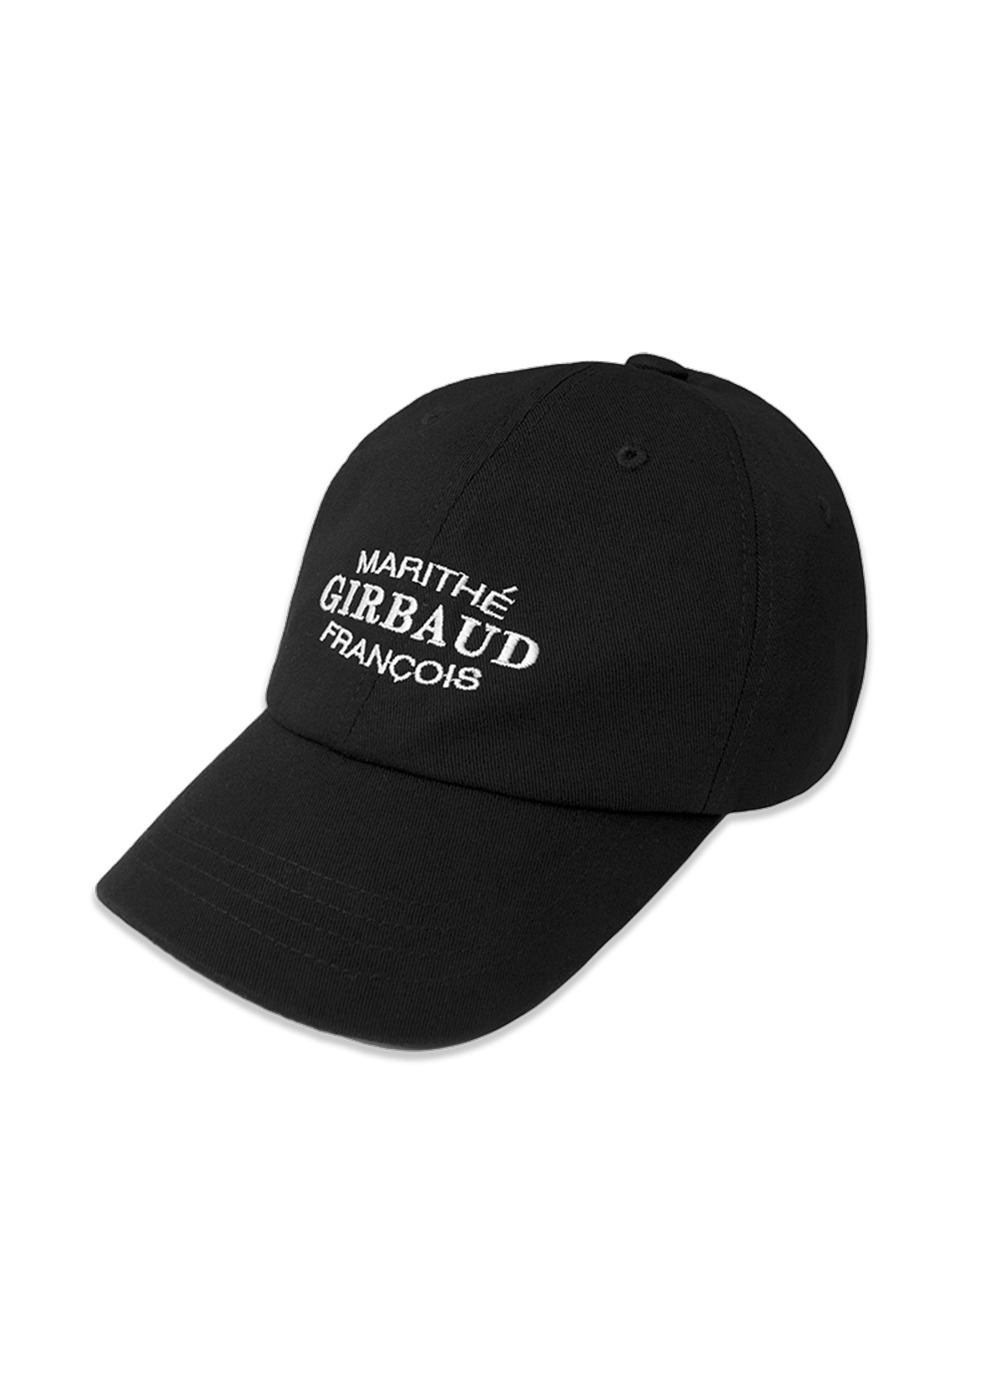 MFG OVAL LOGO CAP black